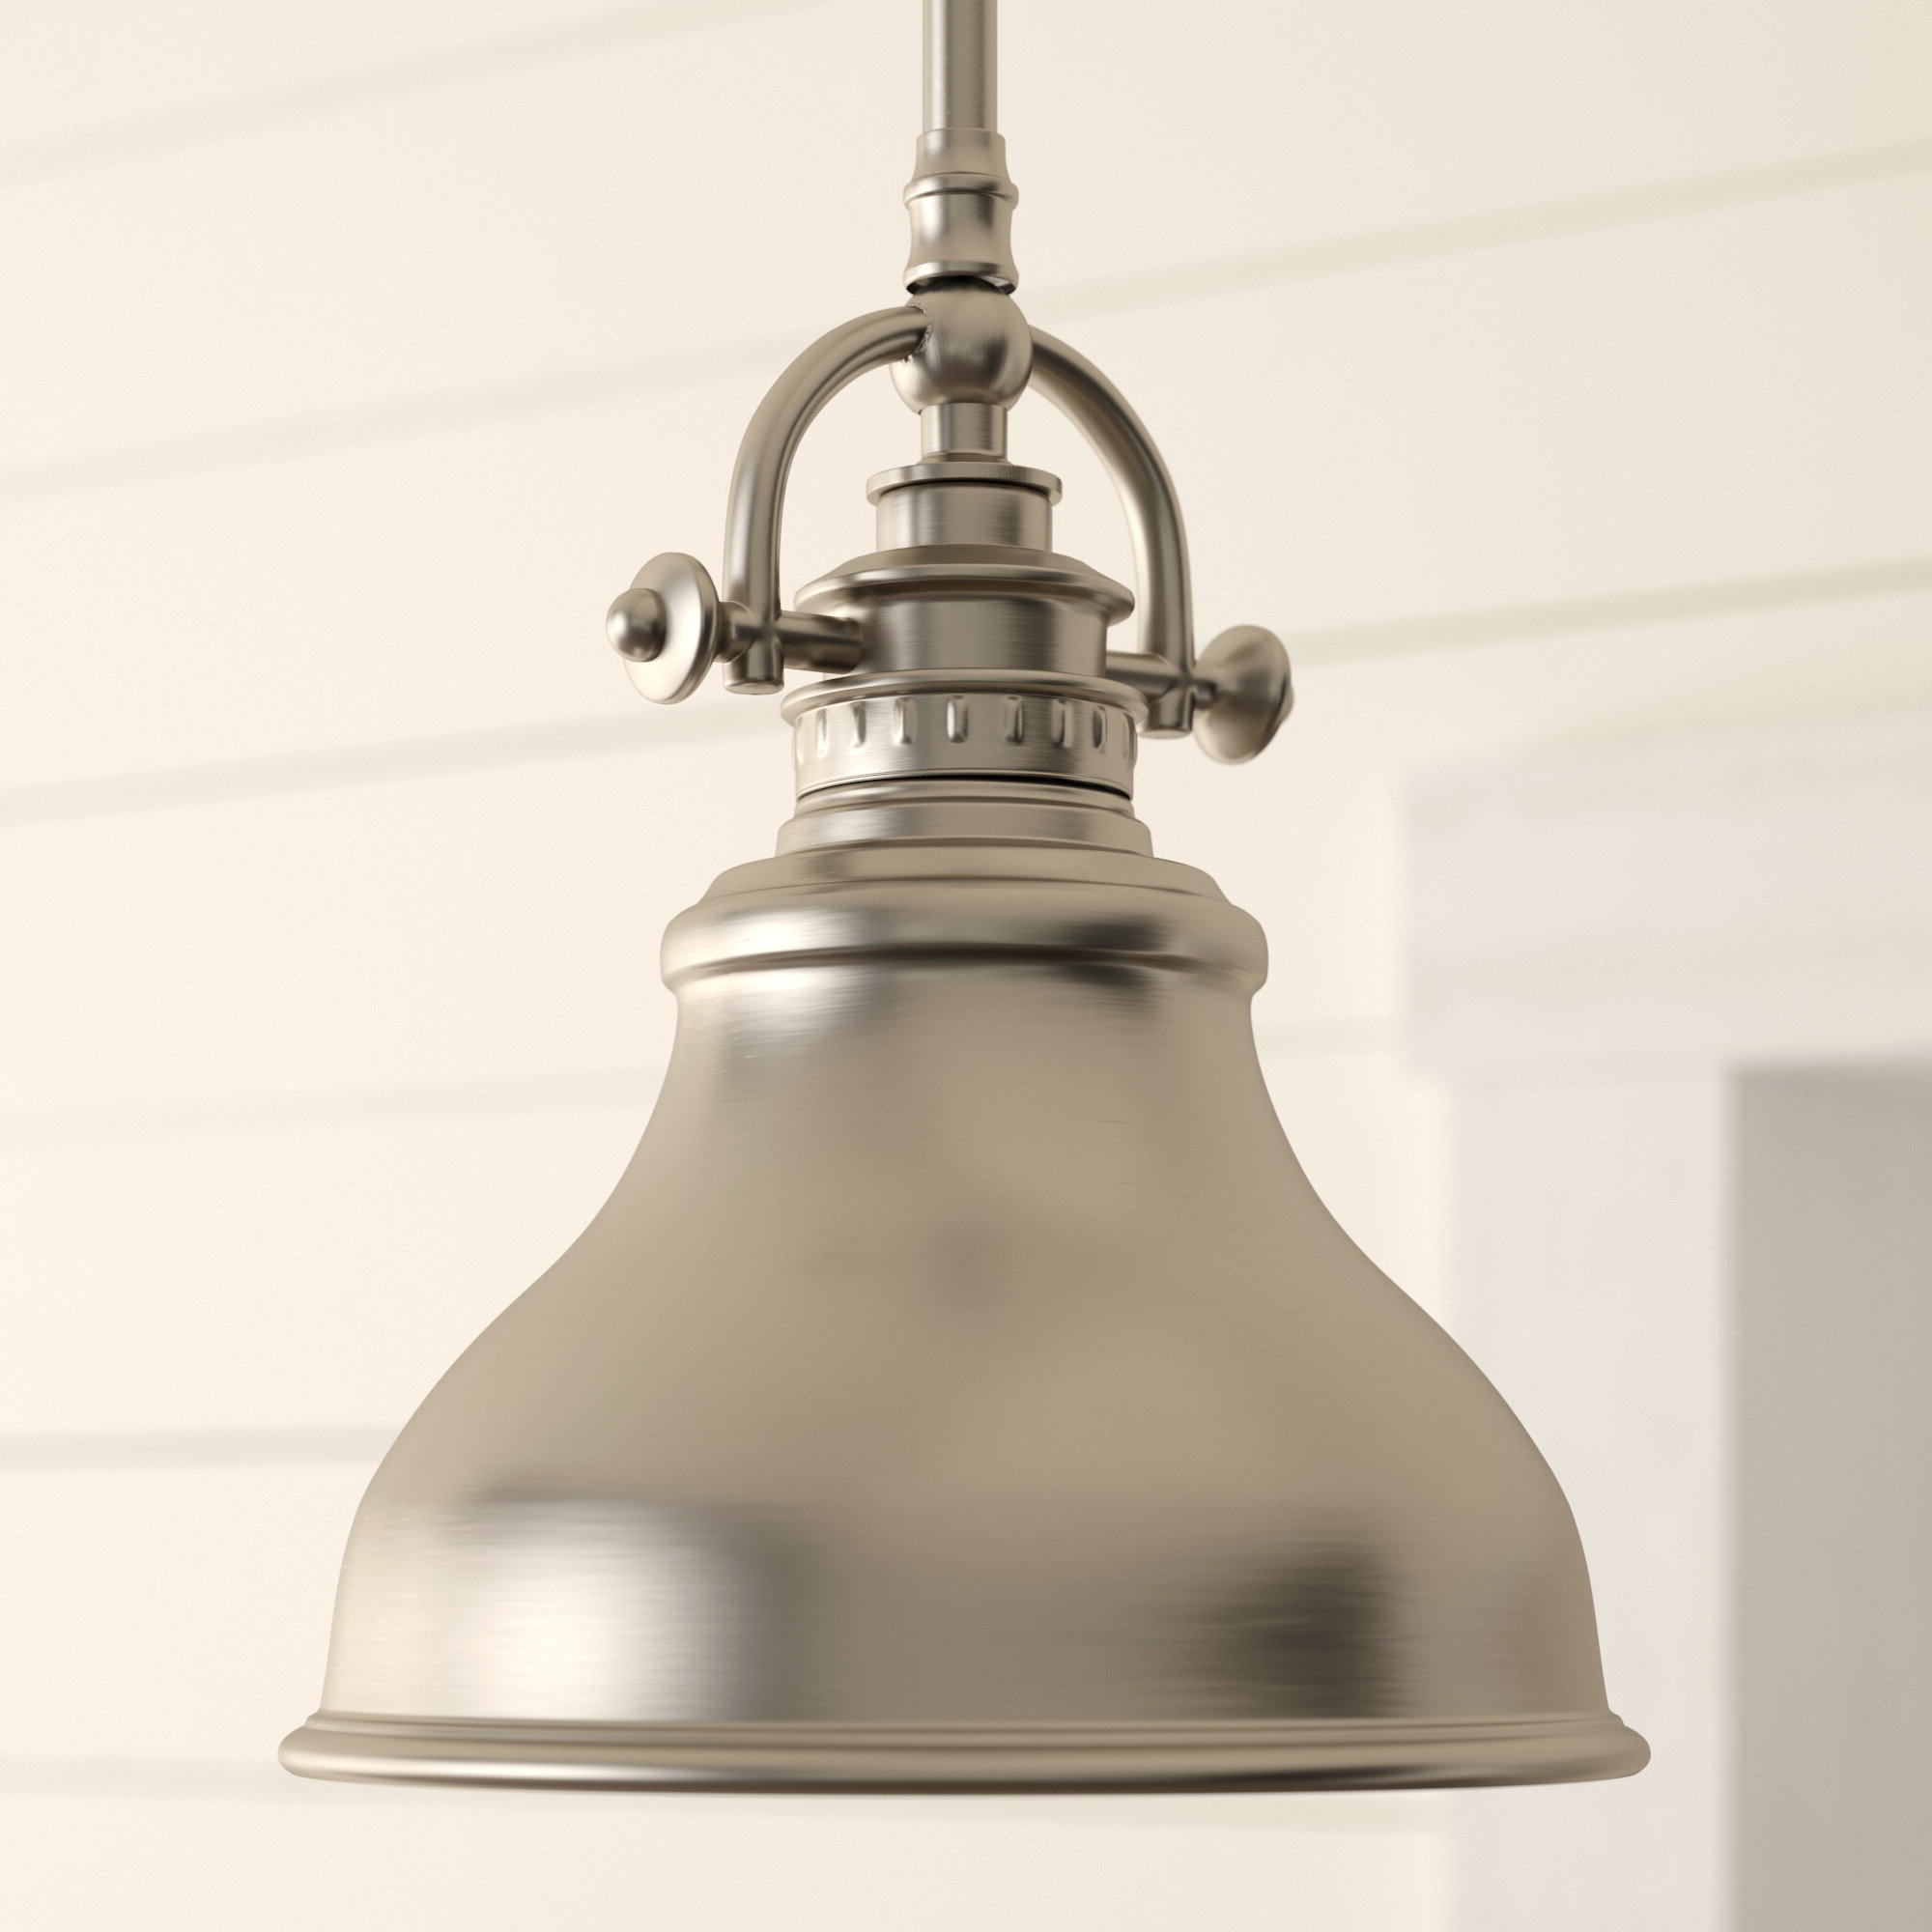 Beachcrest Home Mueller 1 Light Single Dome Pendant Regarding Latest Mueller 1 Light Single Dome Pendants (View 4 of 20)